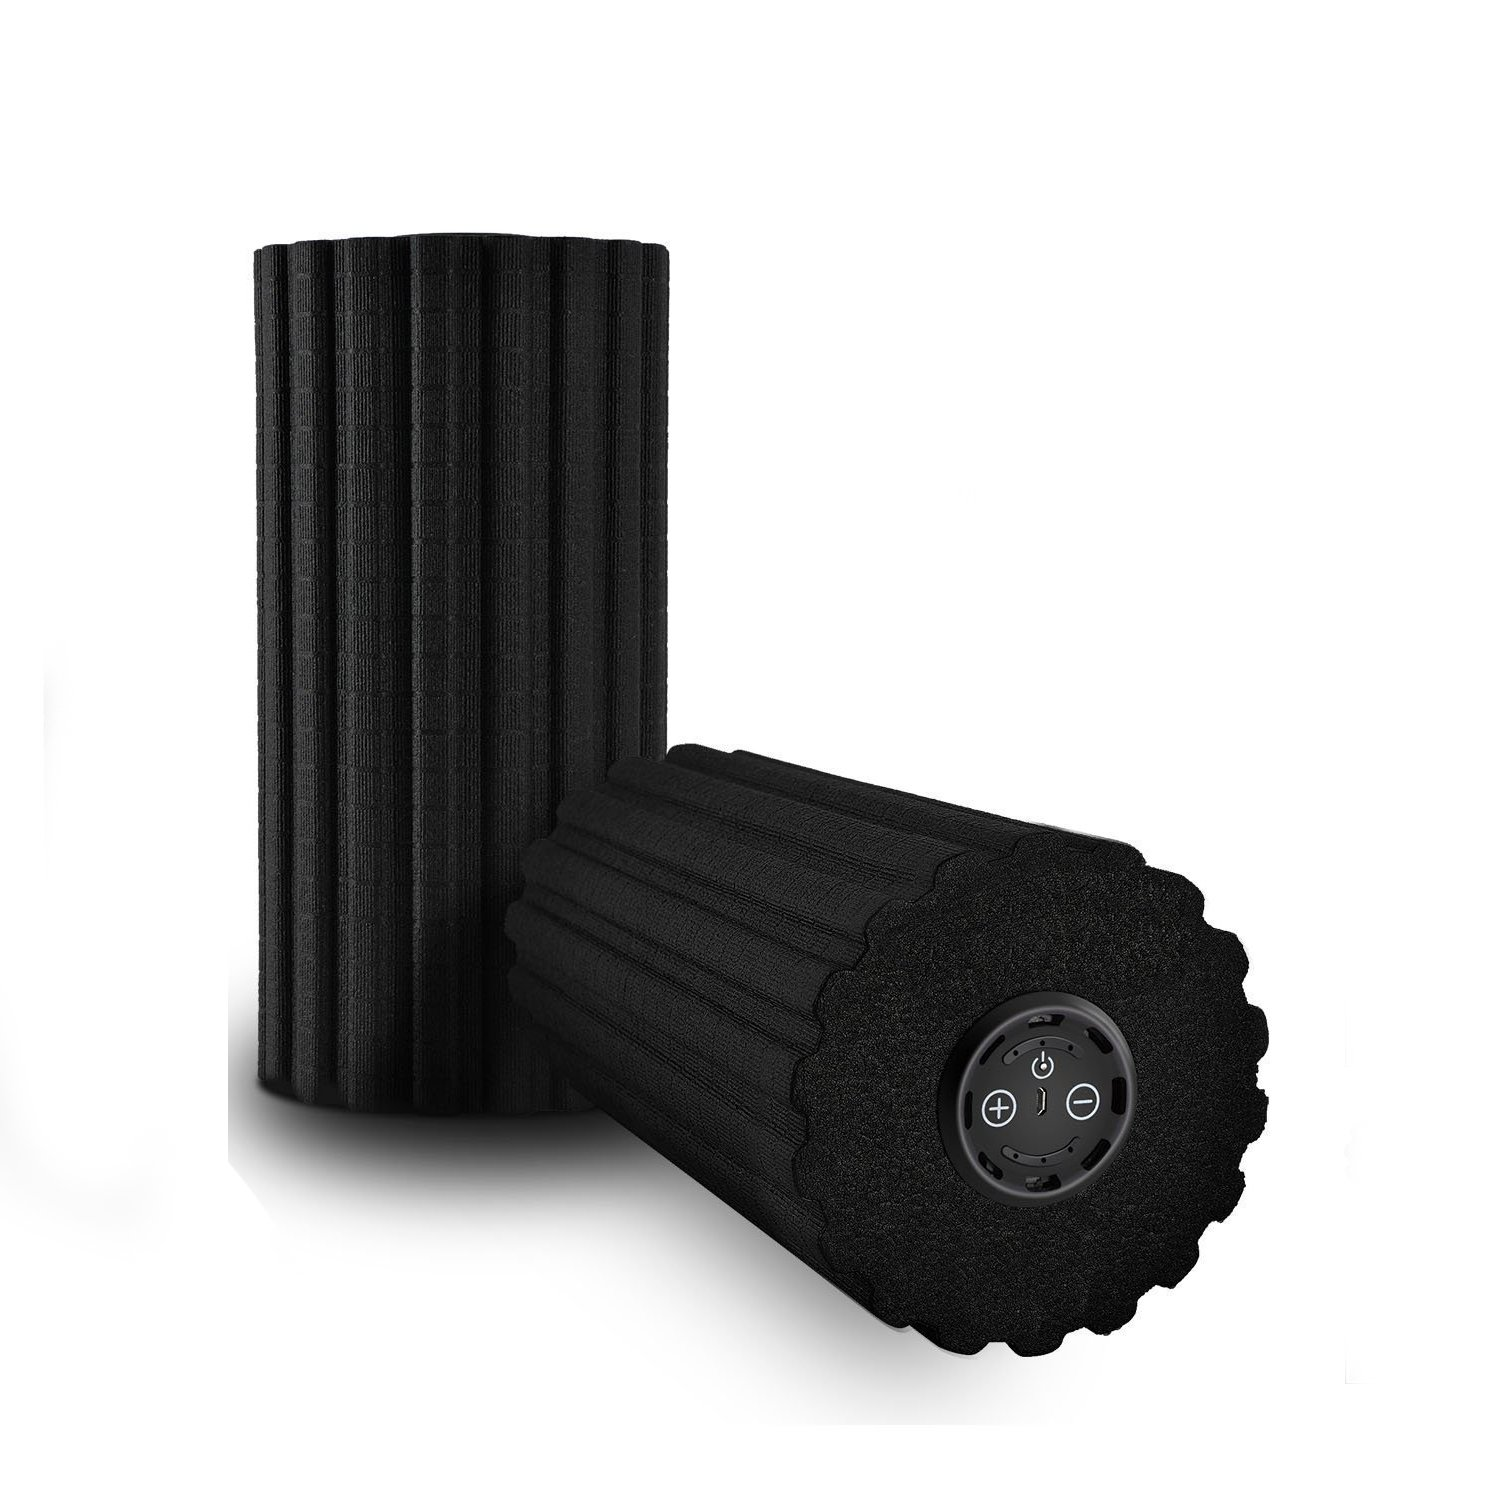 (6-Speed High Intensity, Black) - ULTRAPOWER SPORTS Vibrating Foam Roller 3/6 Speed High Intensity Exercise Muscle Roller with Remote Controller for Yoga,Gym,Deep Tissue Muscle Recovery,Stretching & Pain Release (Blue/Black)   B07BFNYQYL